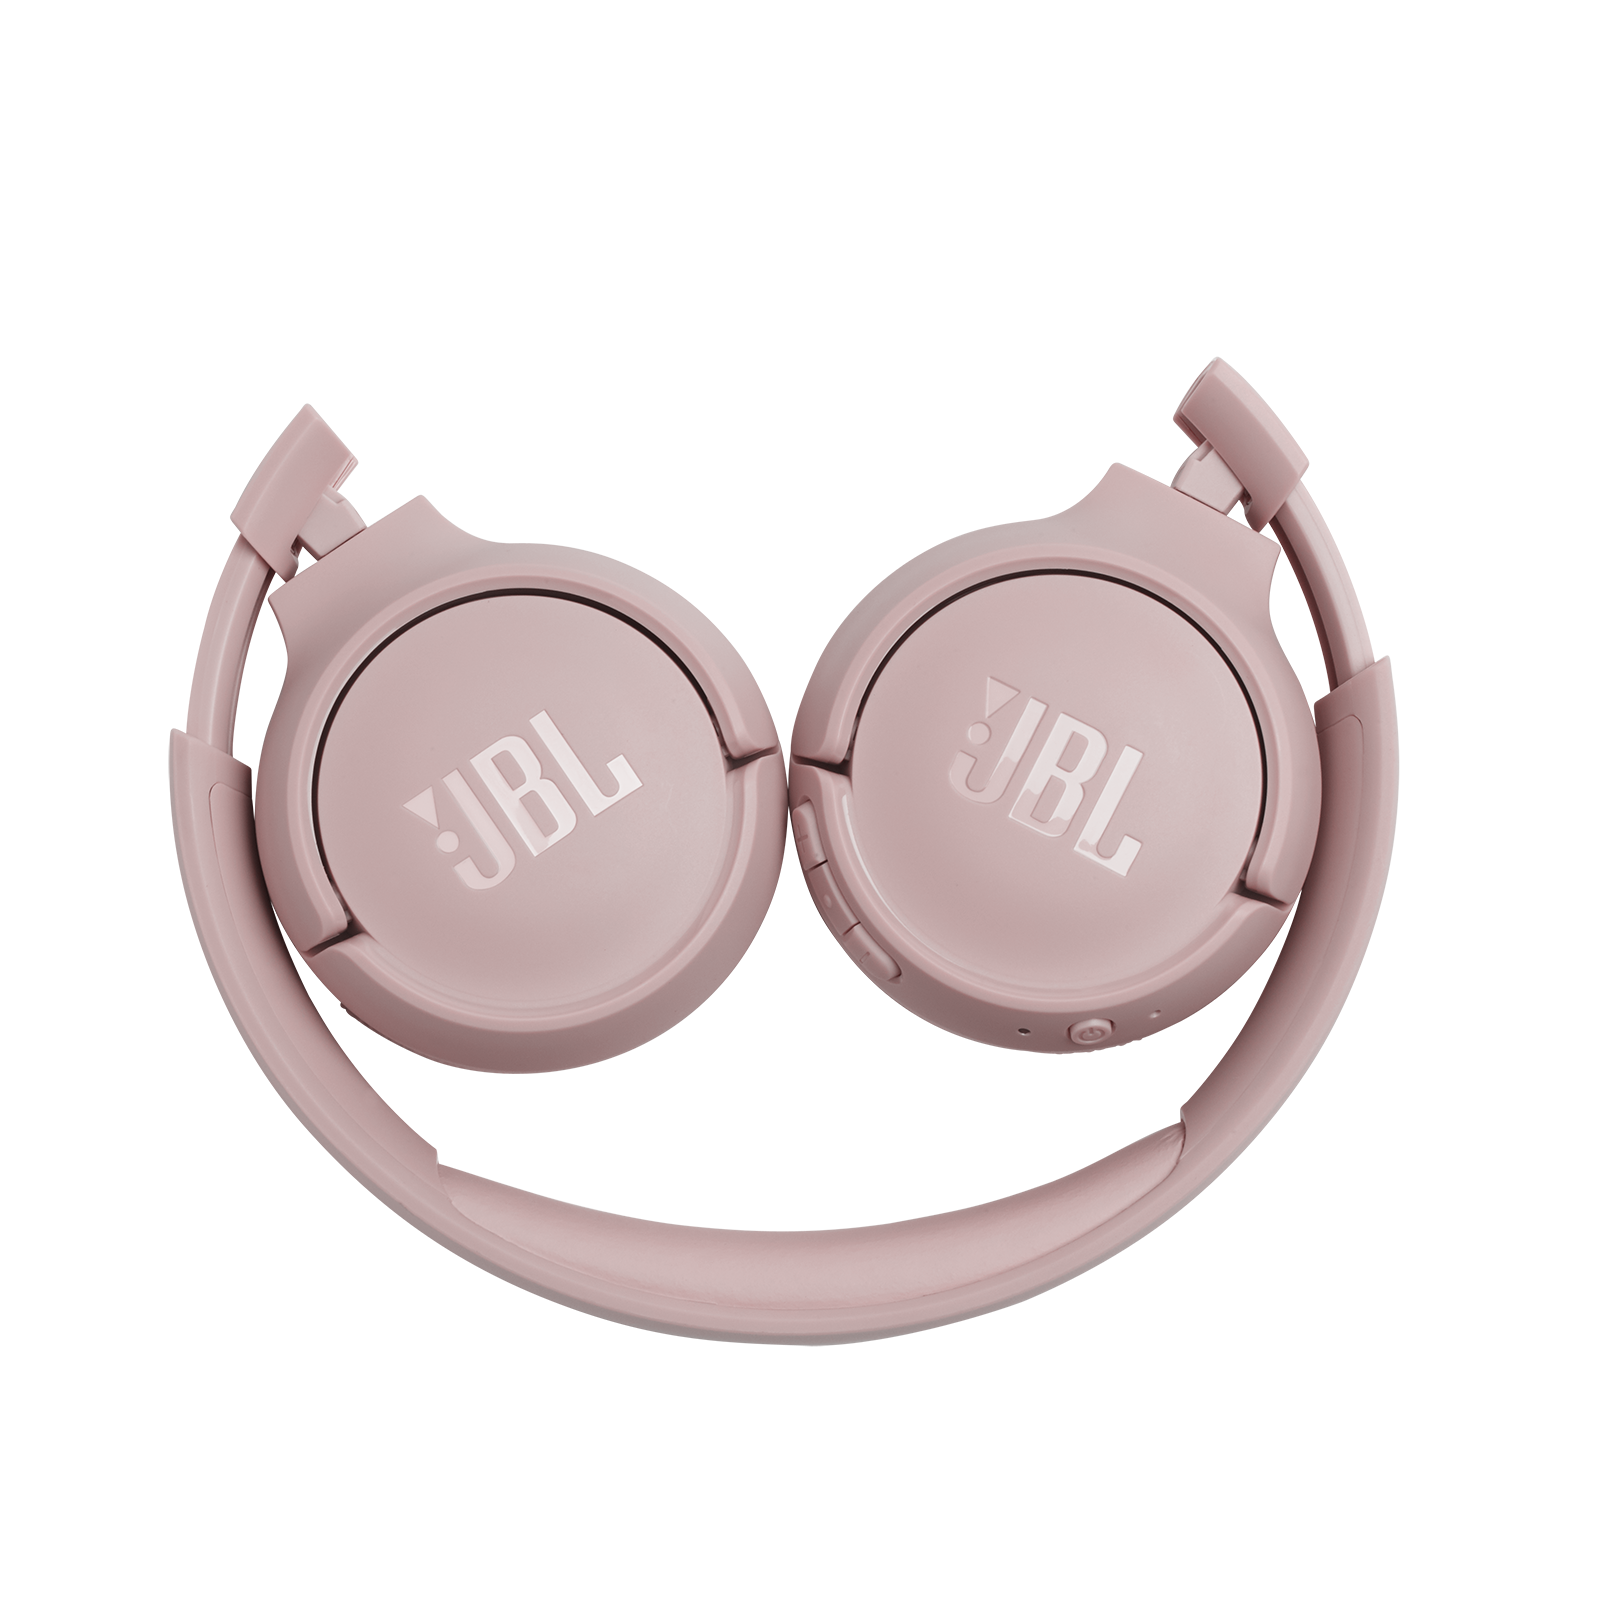 JBL TUNE 500BT - Pink - Wireless on-ear headphones - Detailshot 2